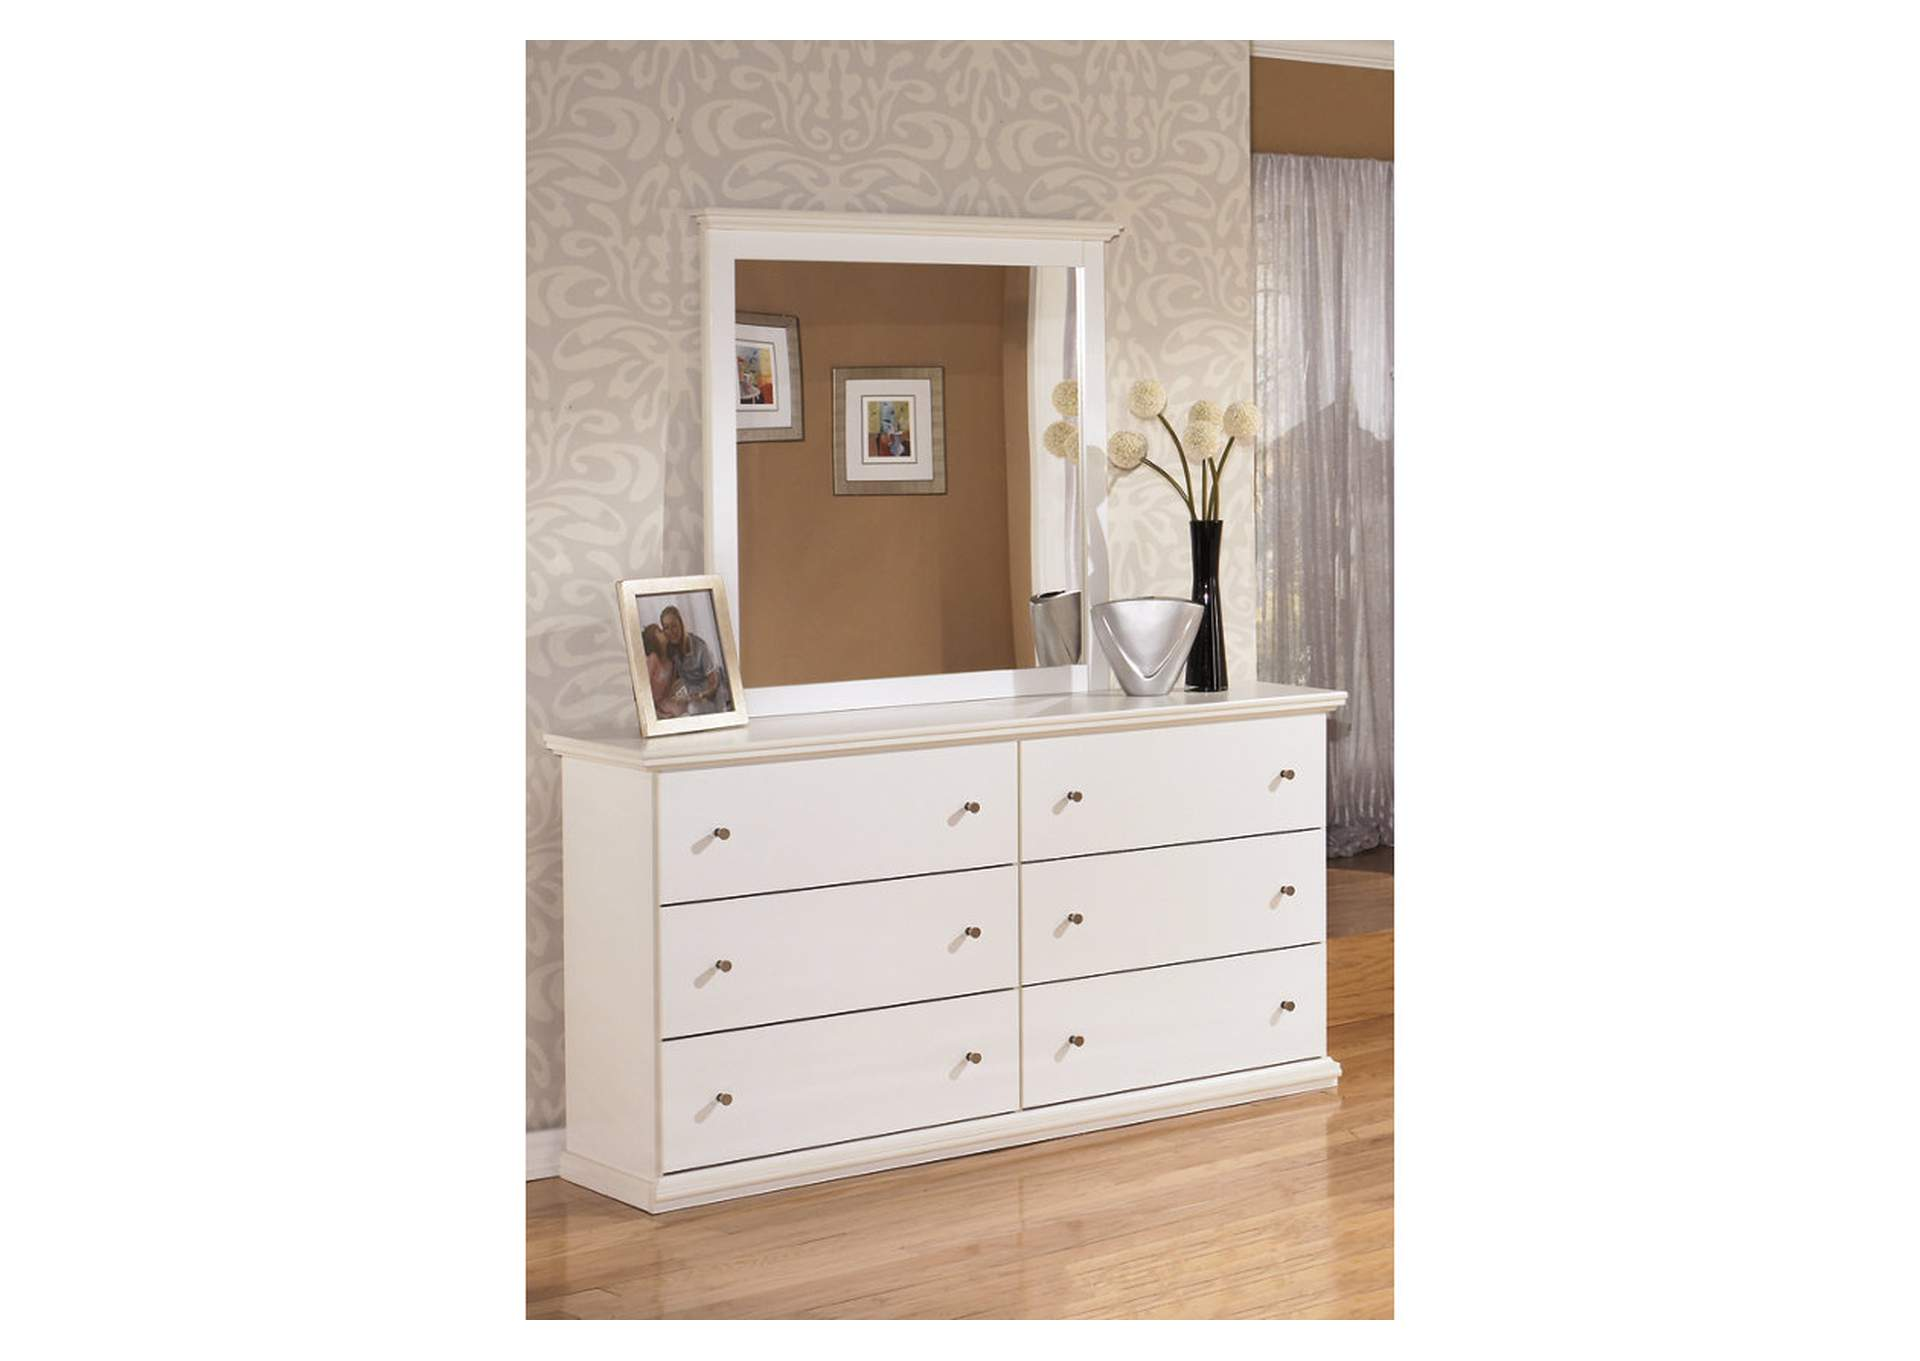 Furniture Outlet Chicago Il Bostwick Shoals Dresser